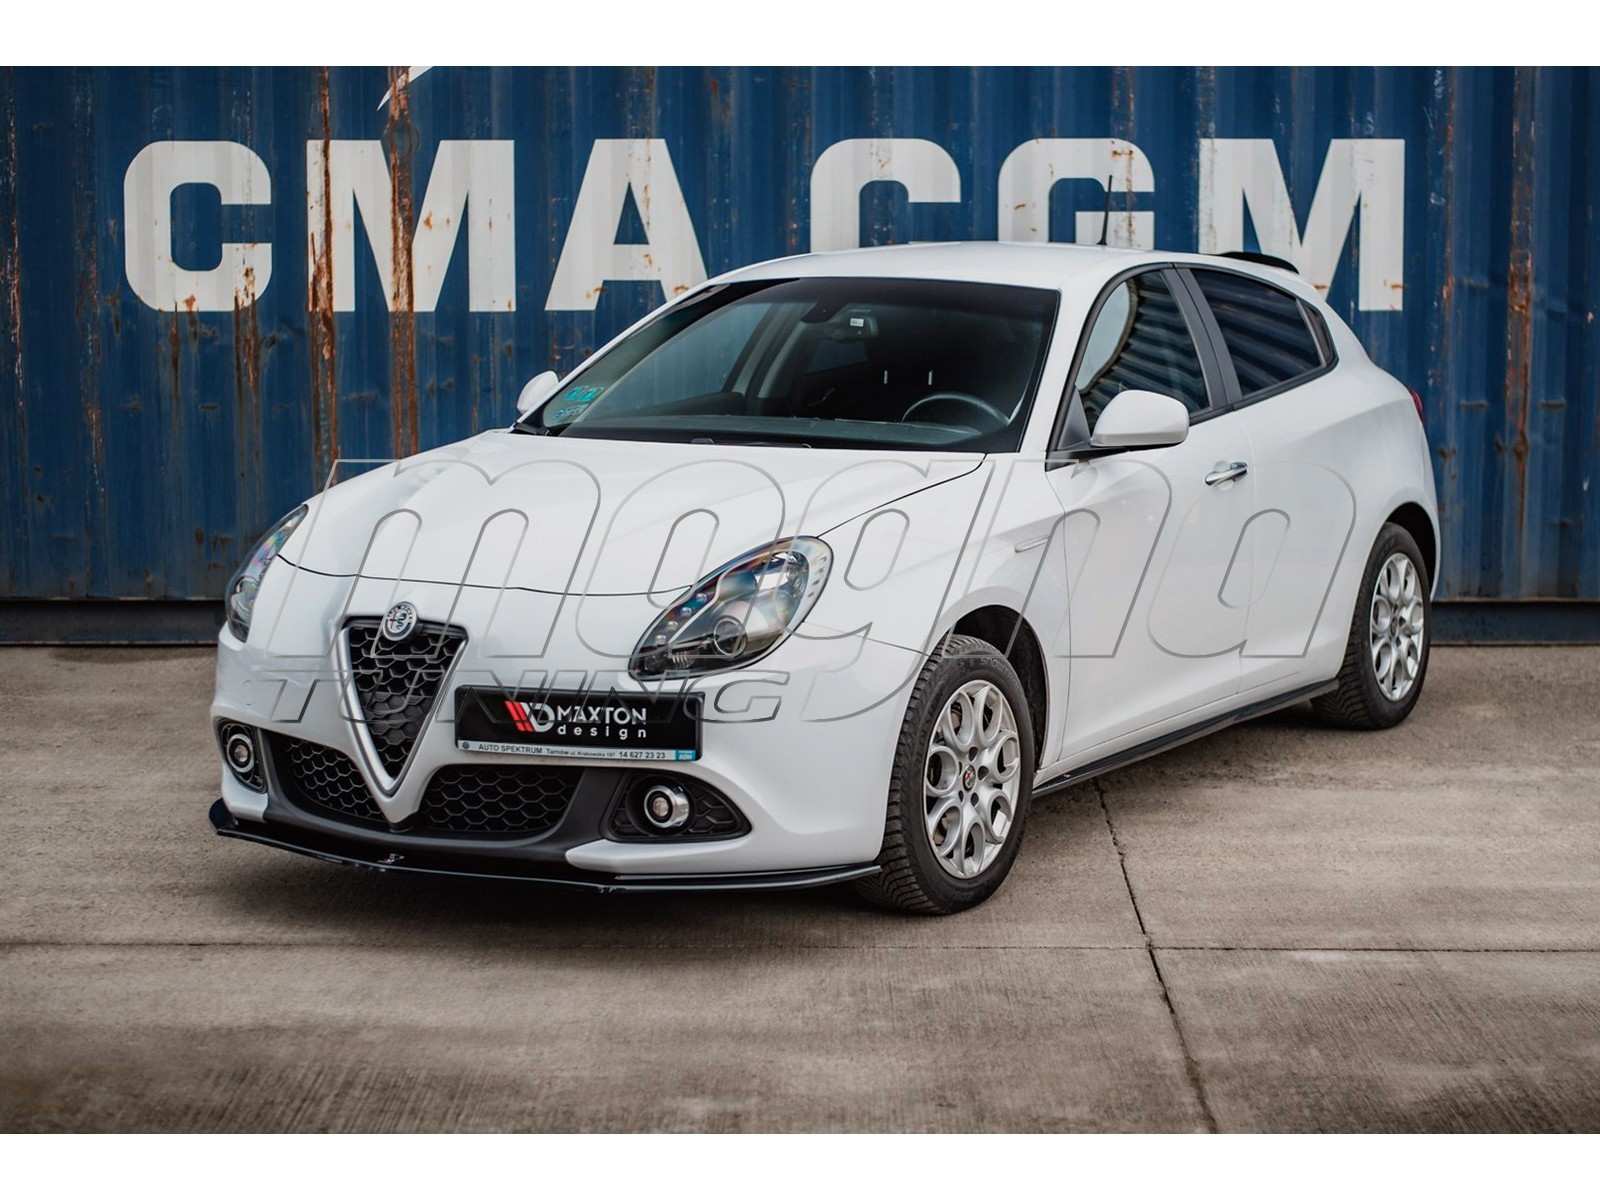 Alfa Romeo Giulietta Matrix Body Kit